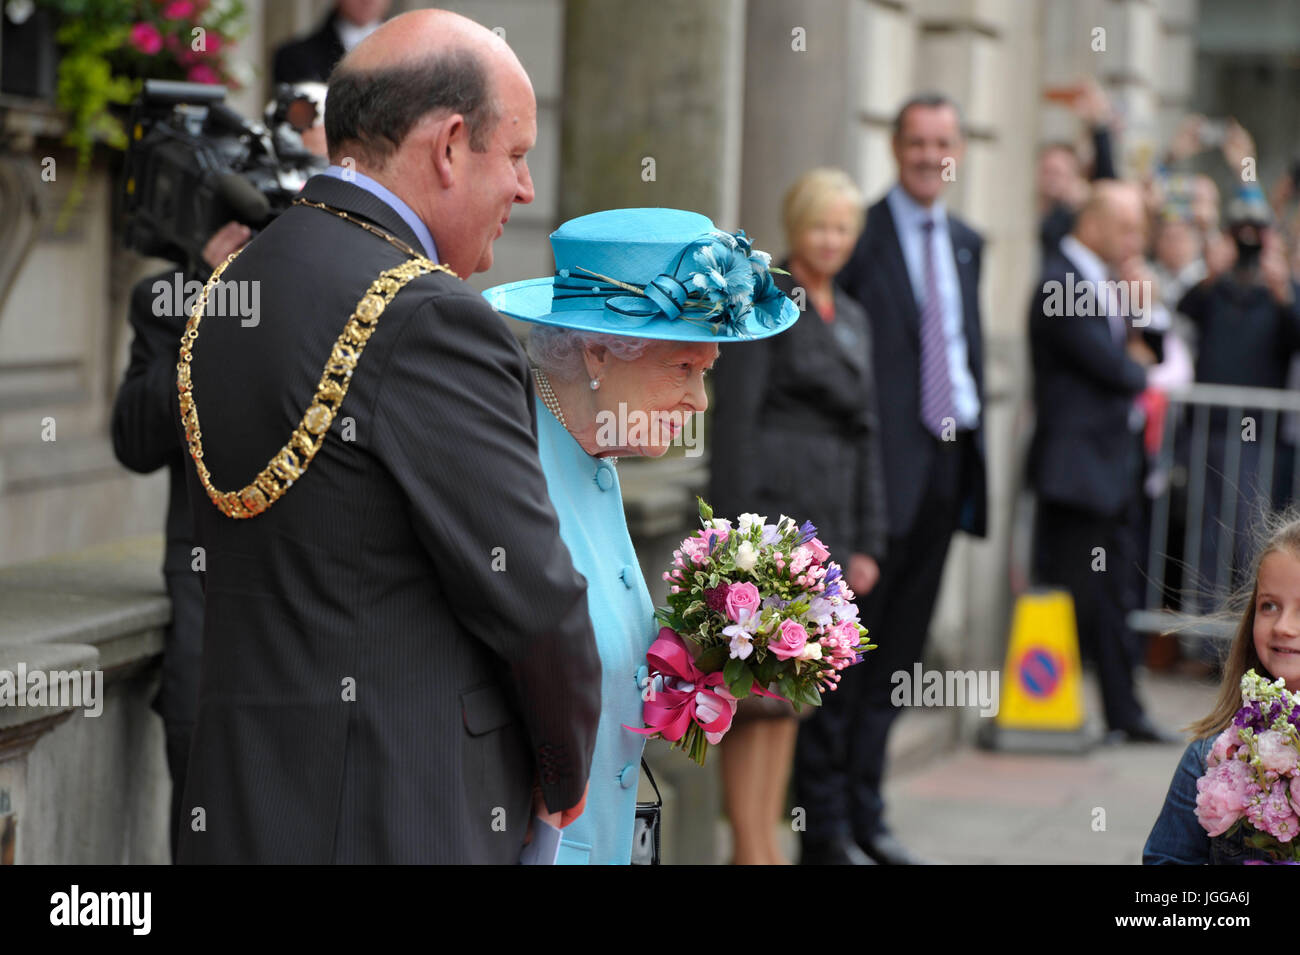 Edinburgh, UK. 7. Juli 2017.  Die Königin besucht The Royal Society of Edinburgh im George Street. Bildnachweis: Stockbild